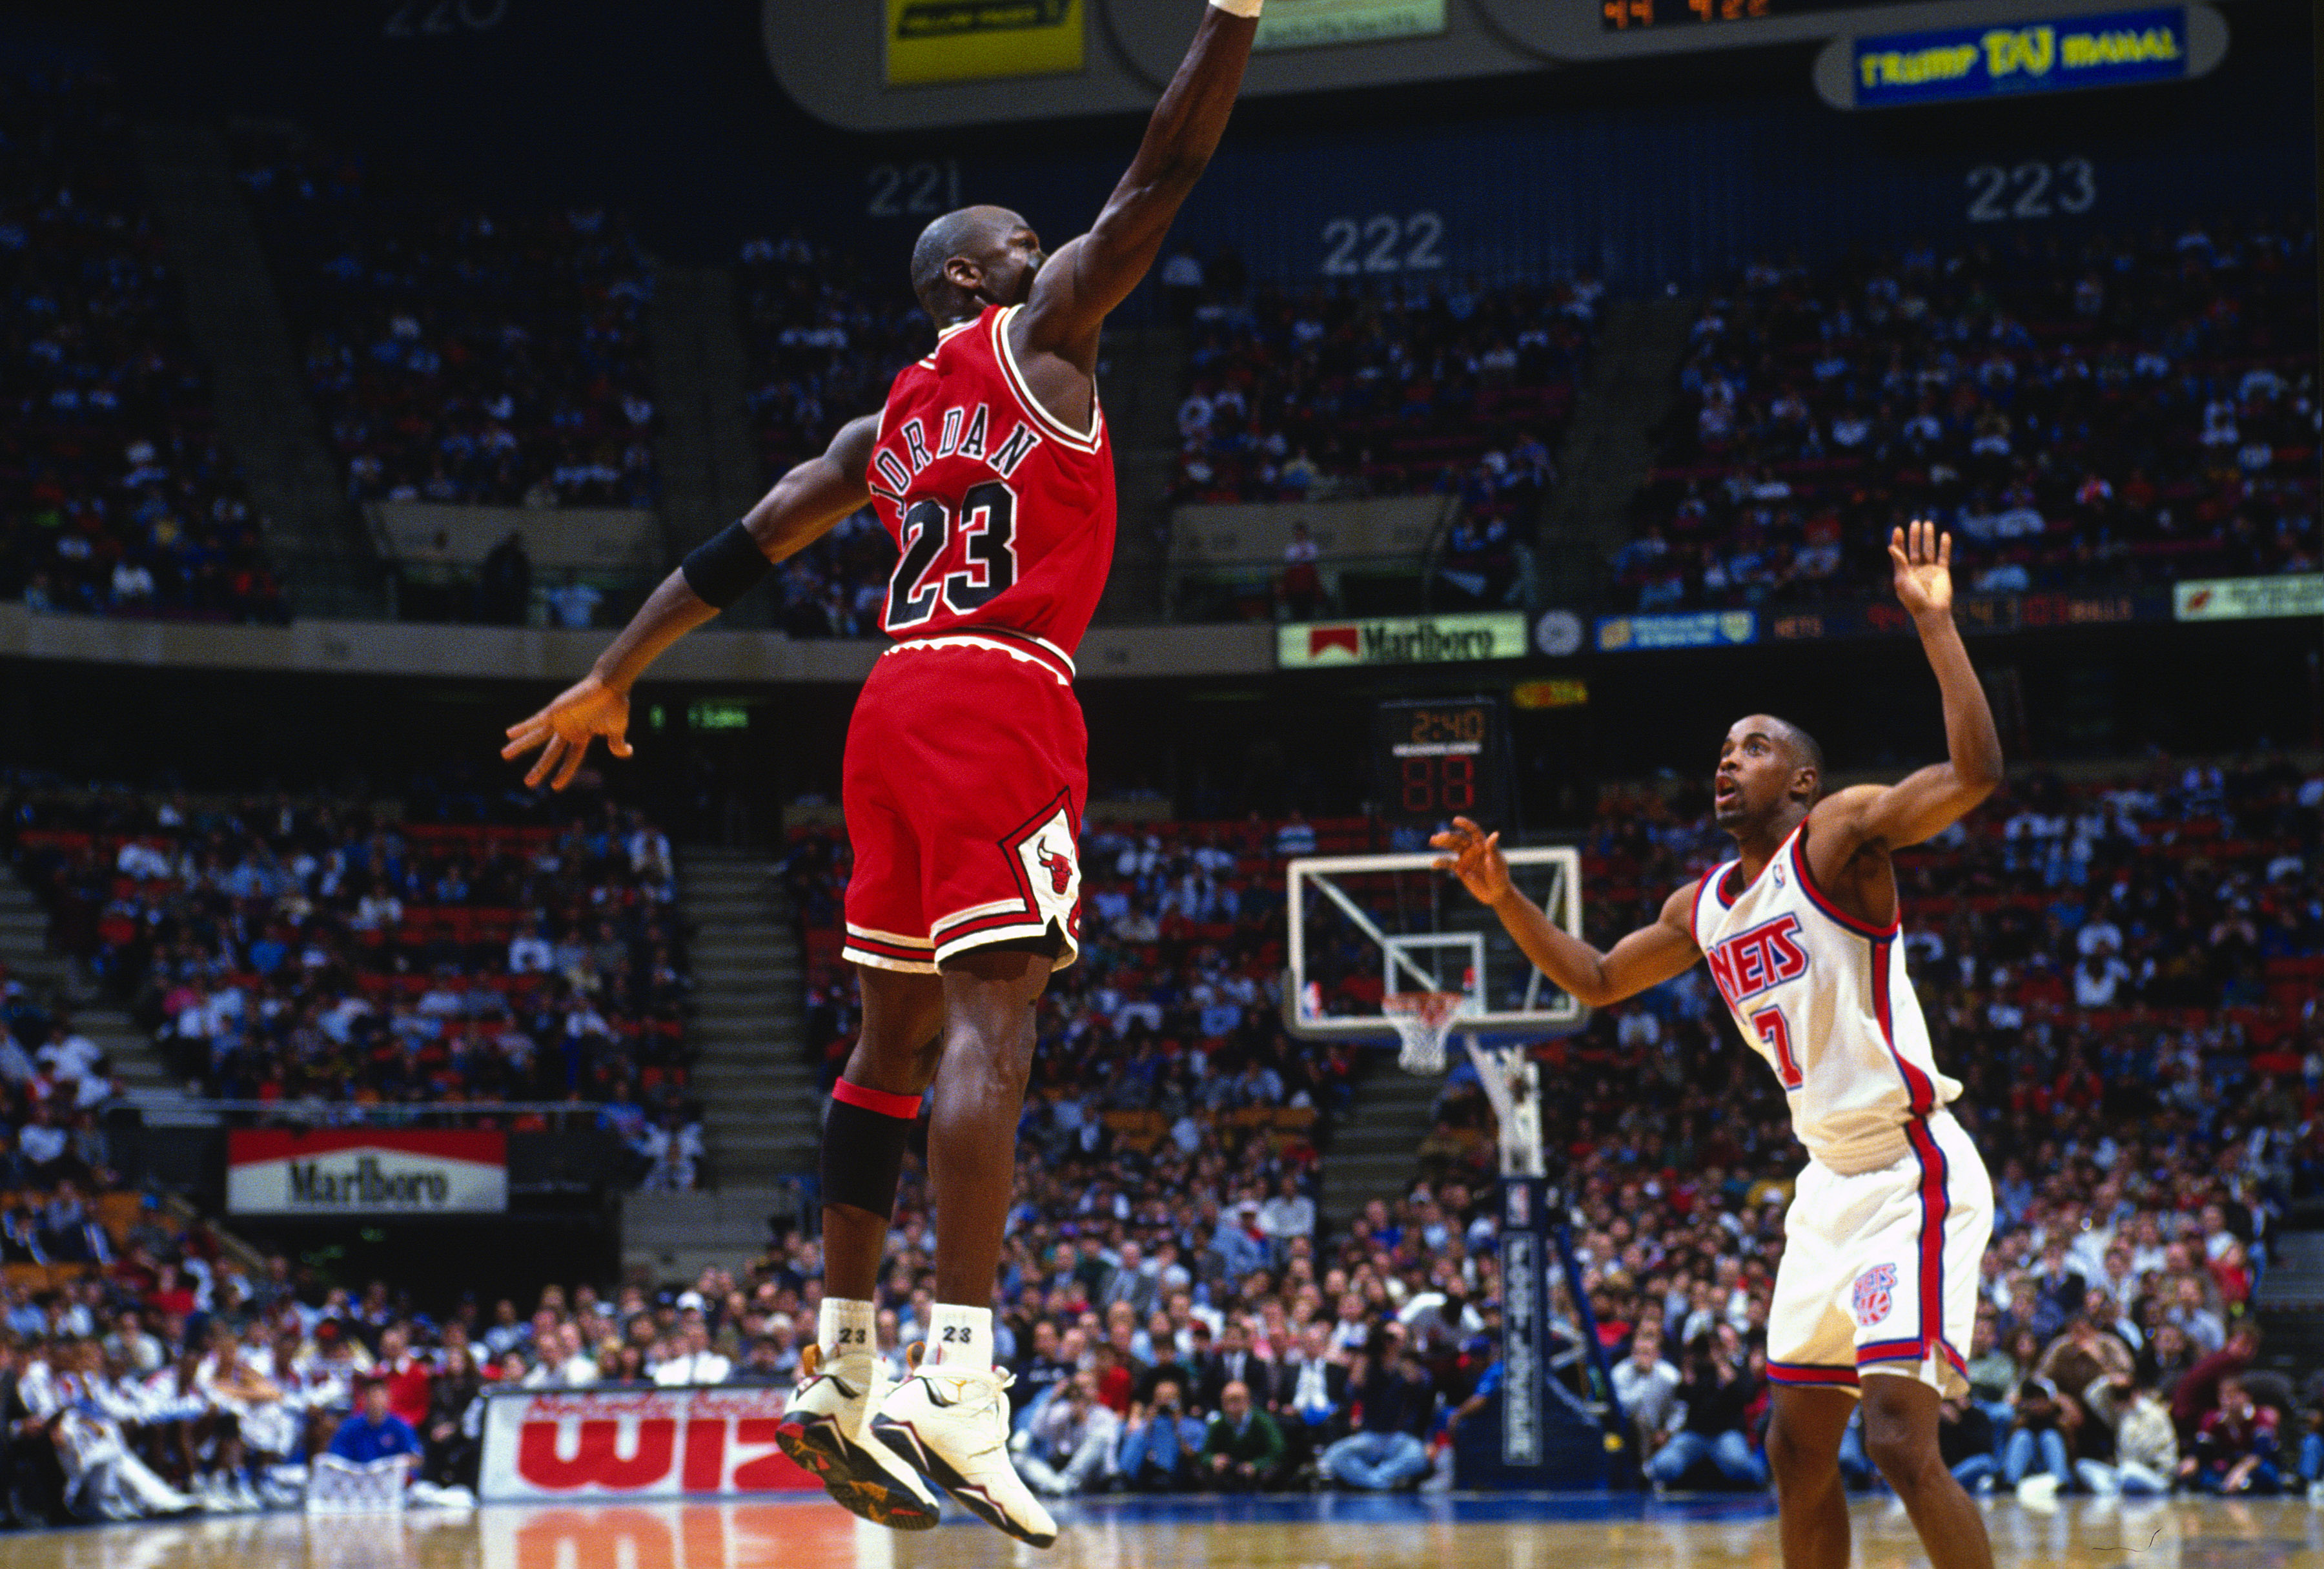 A Simple Diet Helped Keep Michael Jordan at the Top of His Game for Years